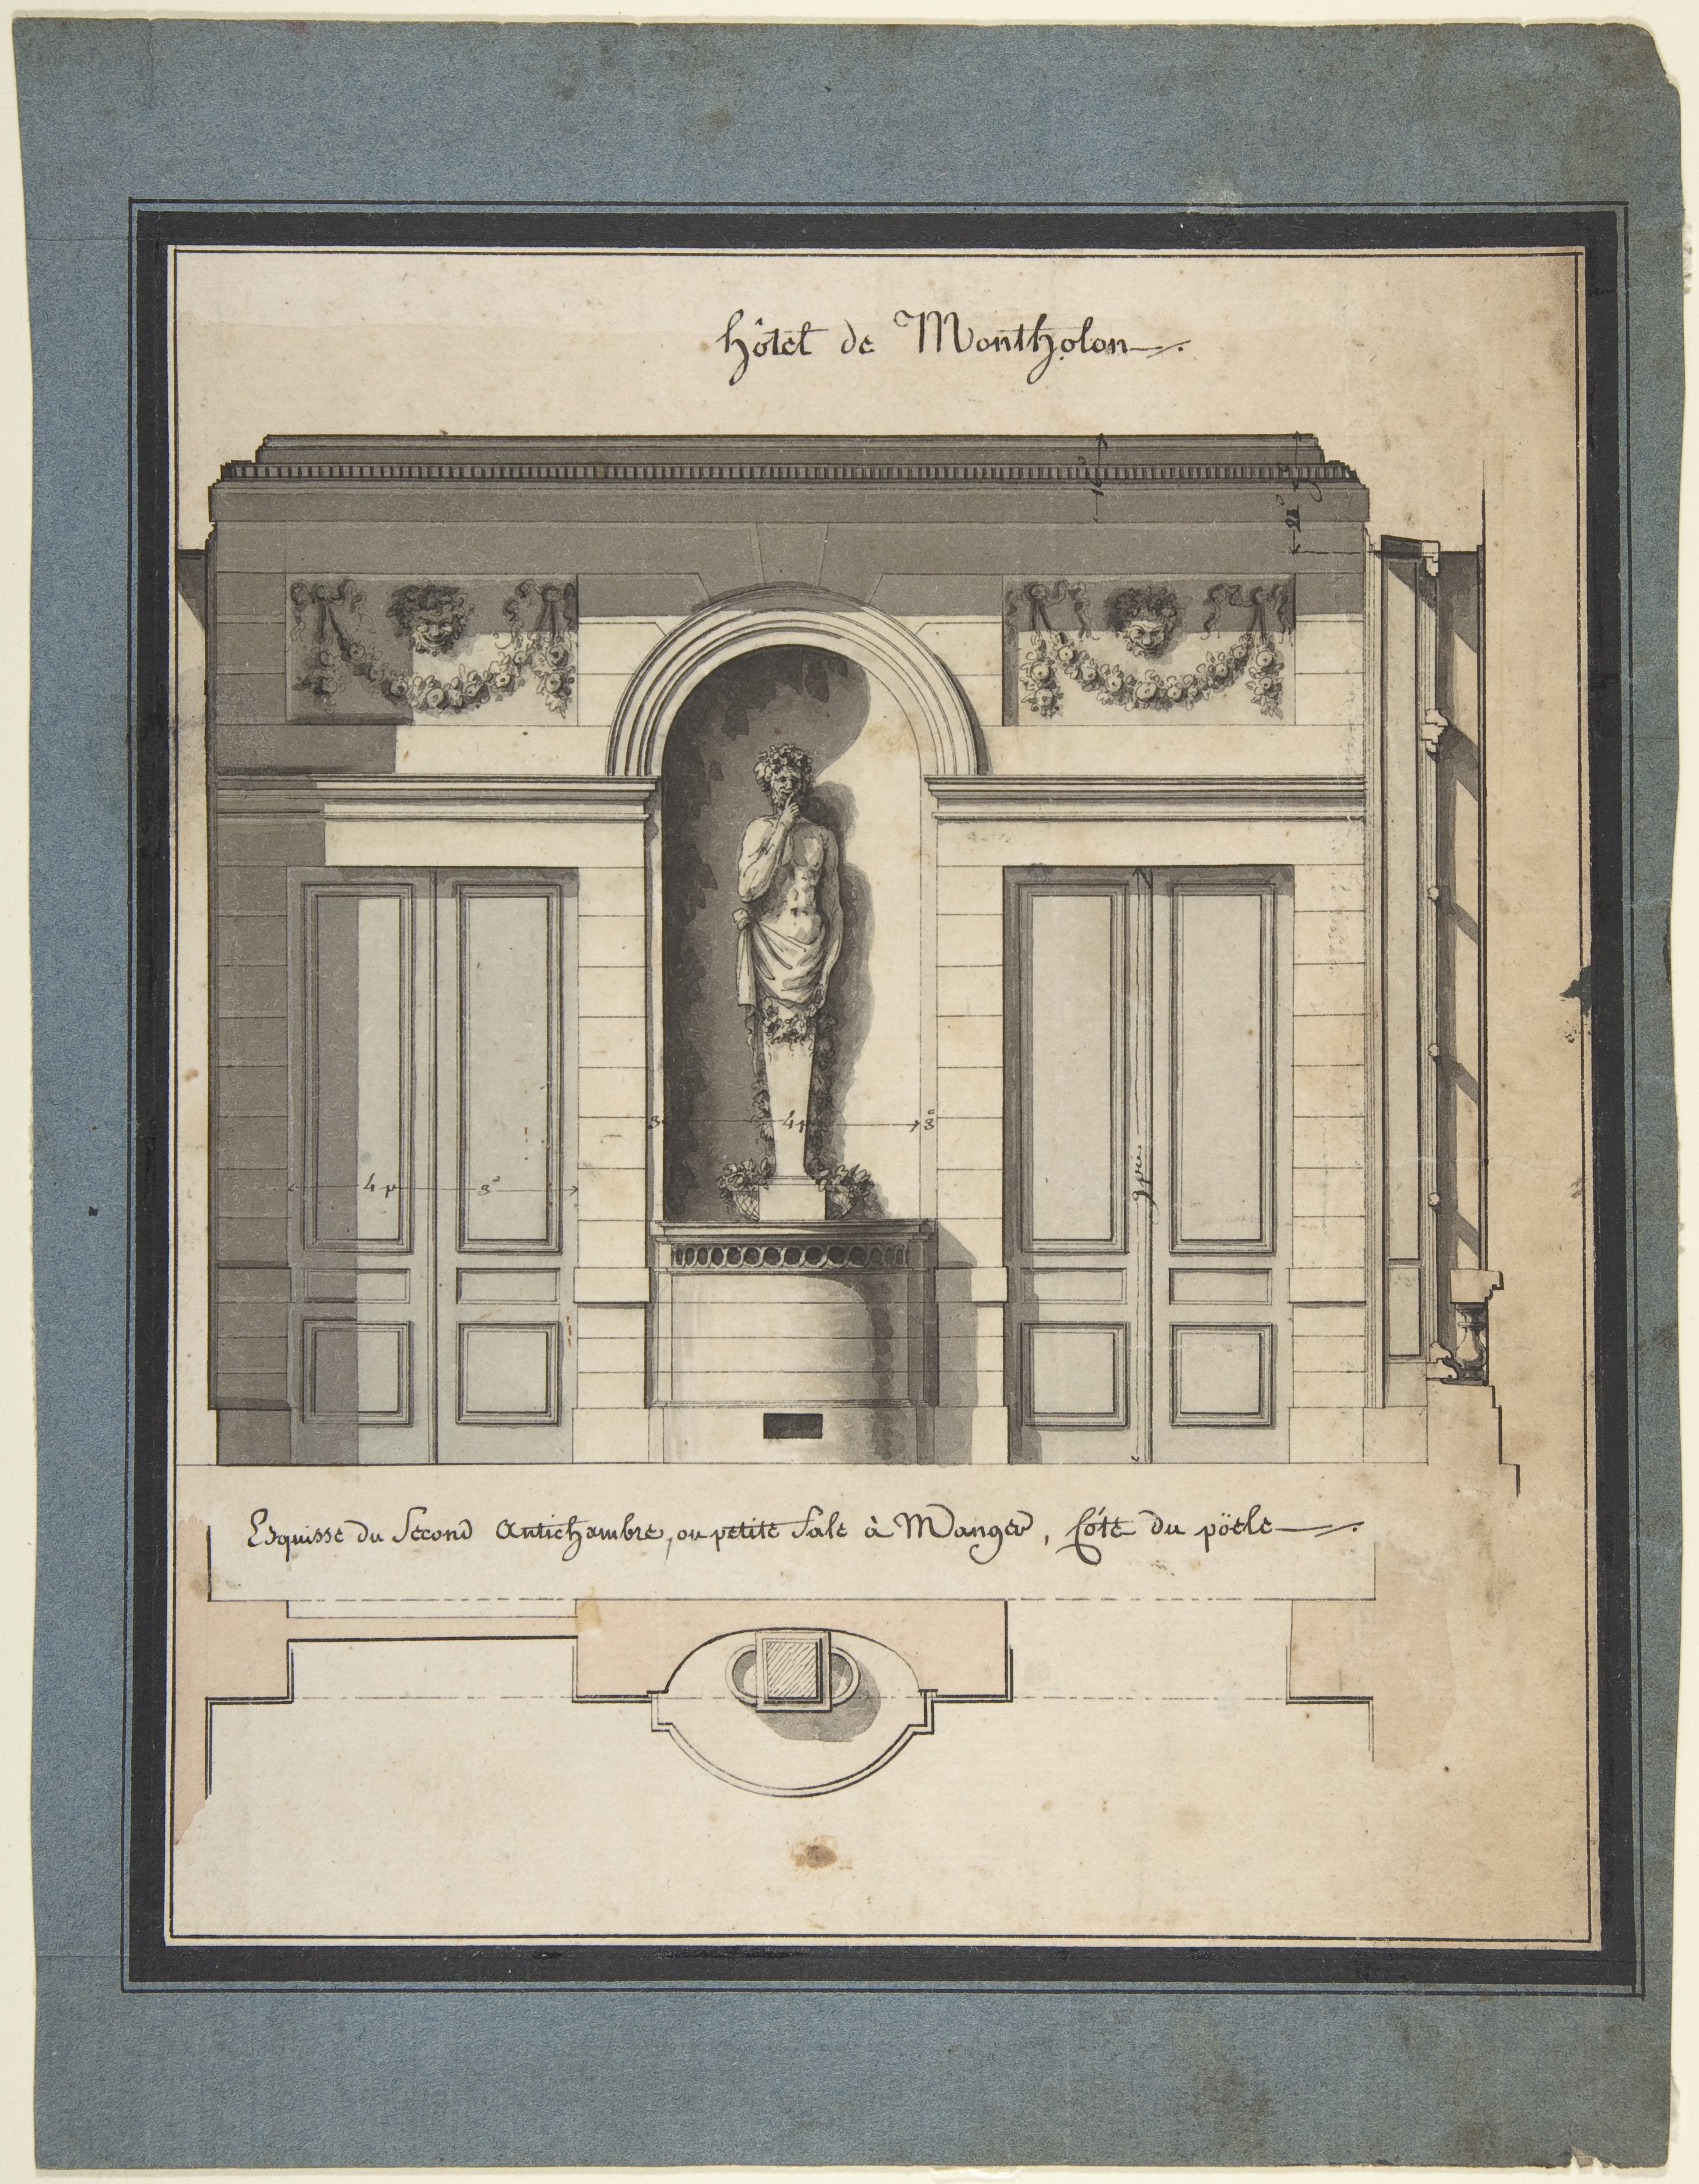 File:Jean Jacques Lequeu, Section and Plan of the Small Dining Room of the Hôtel de Montholon 2 ...